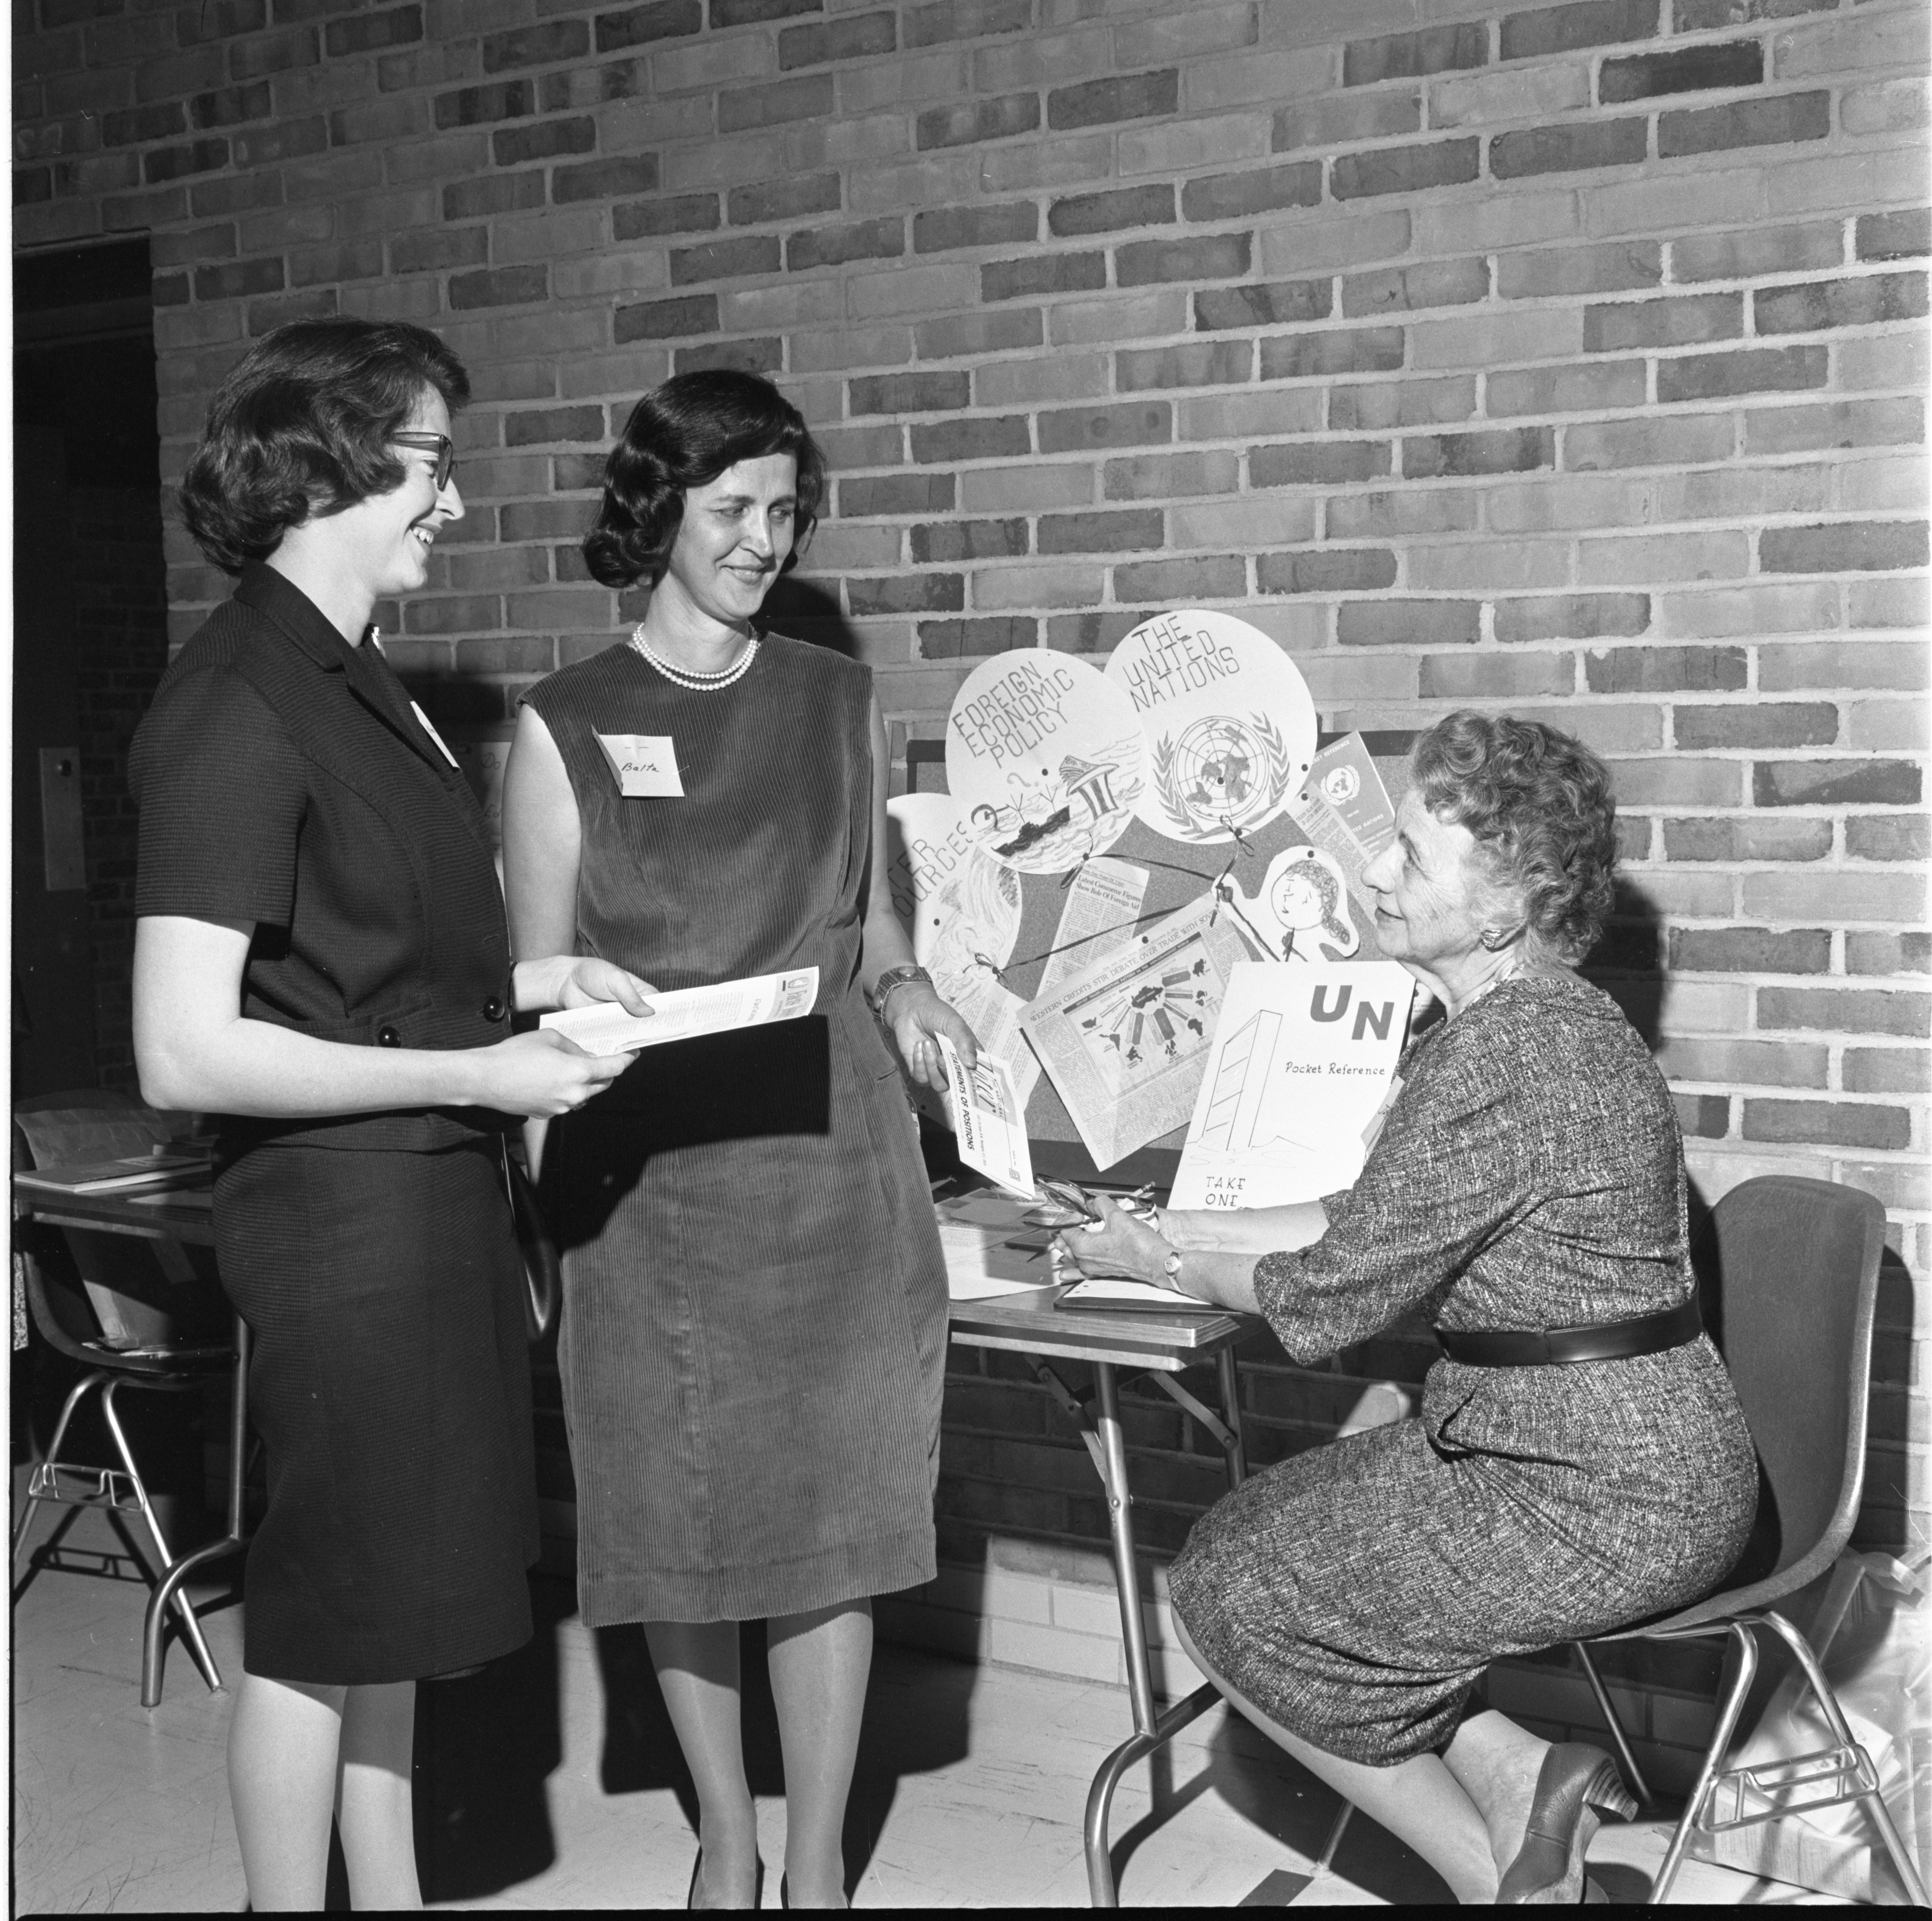 League Of Women Voters Members Discuss Study Groups, September 1964 image